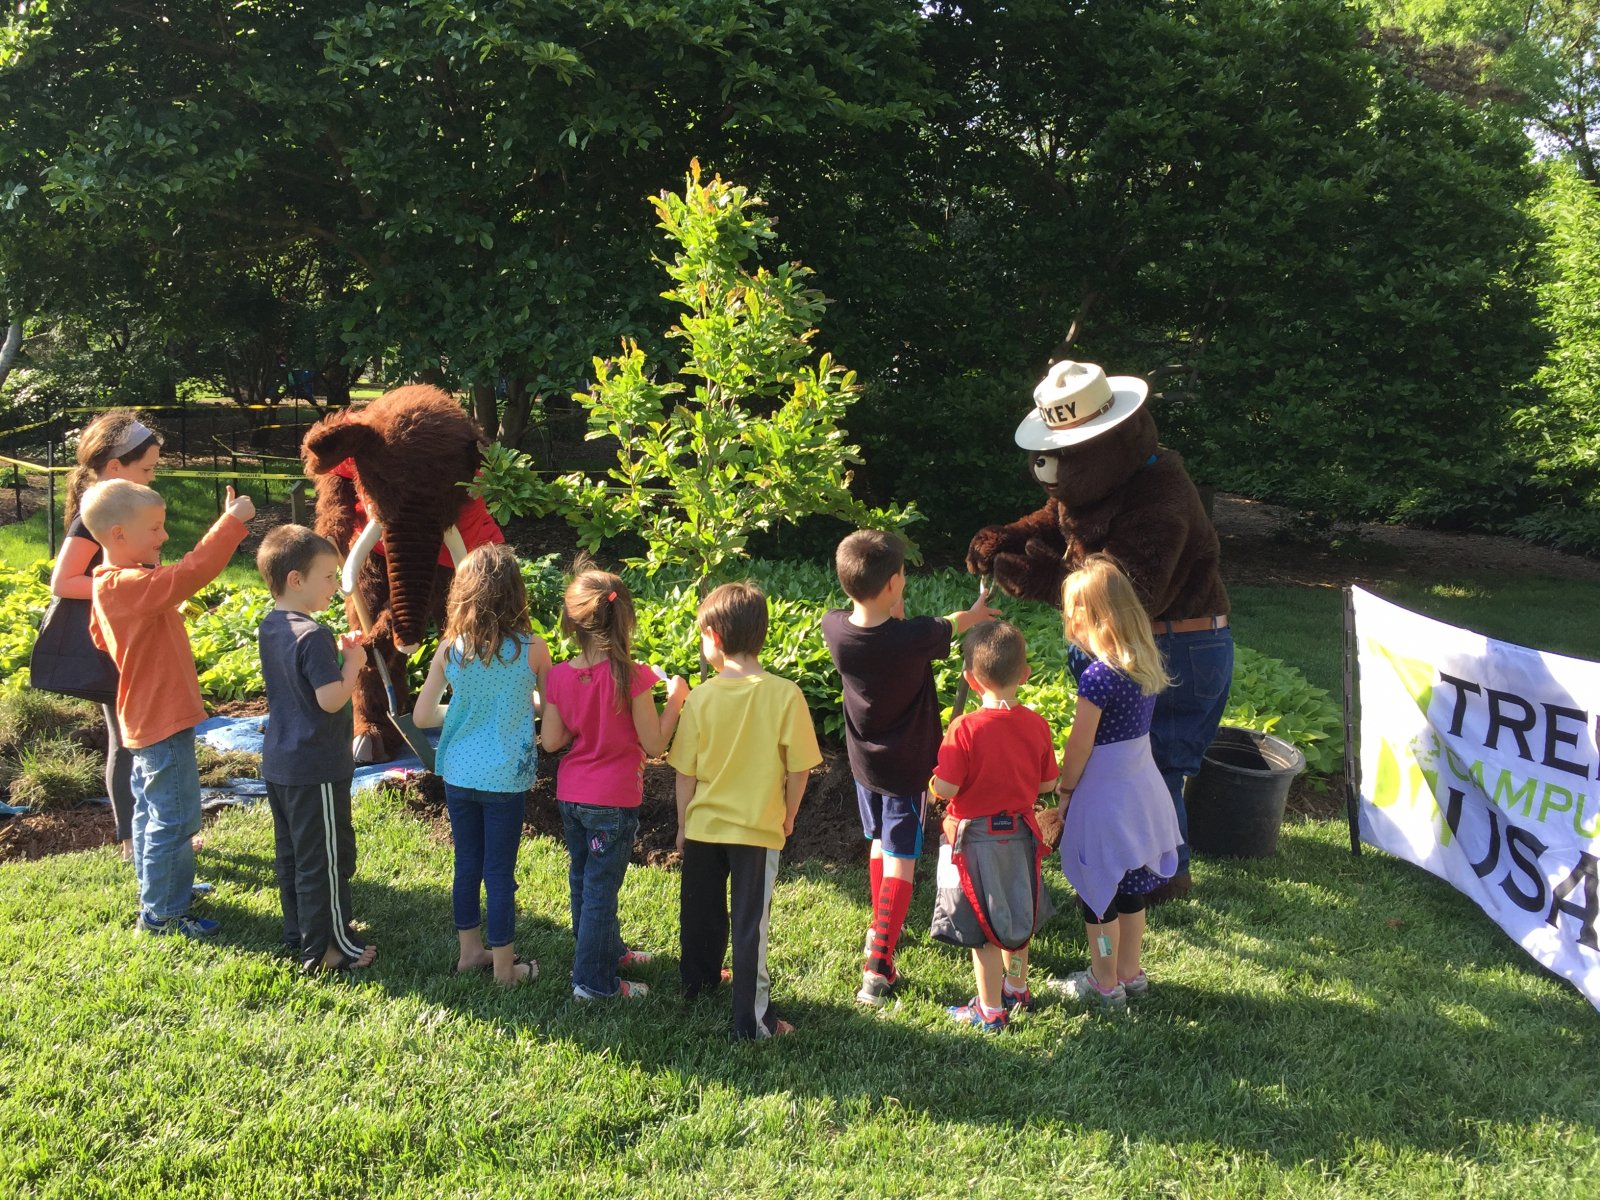 Children gather with Smokey Bear for tree planting activity.